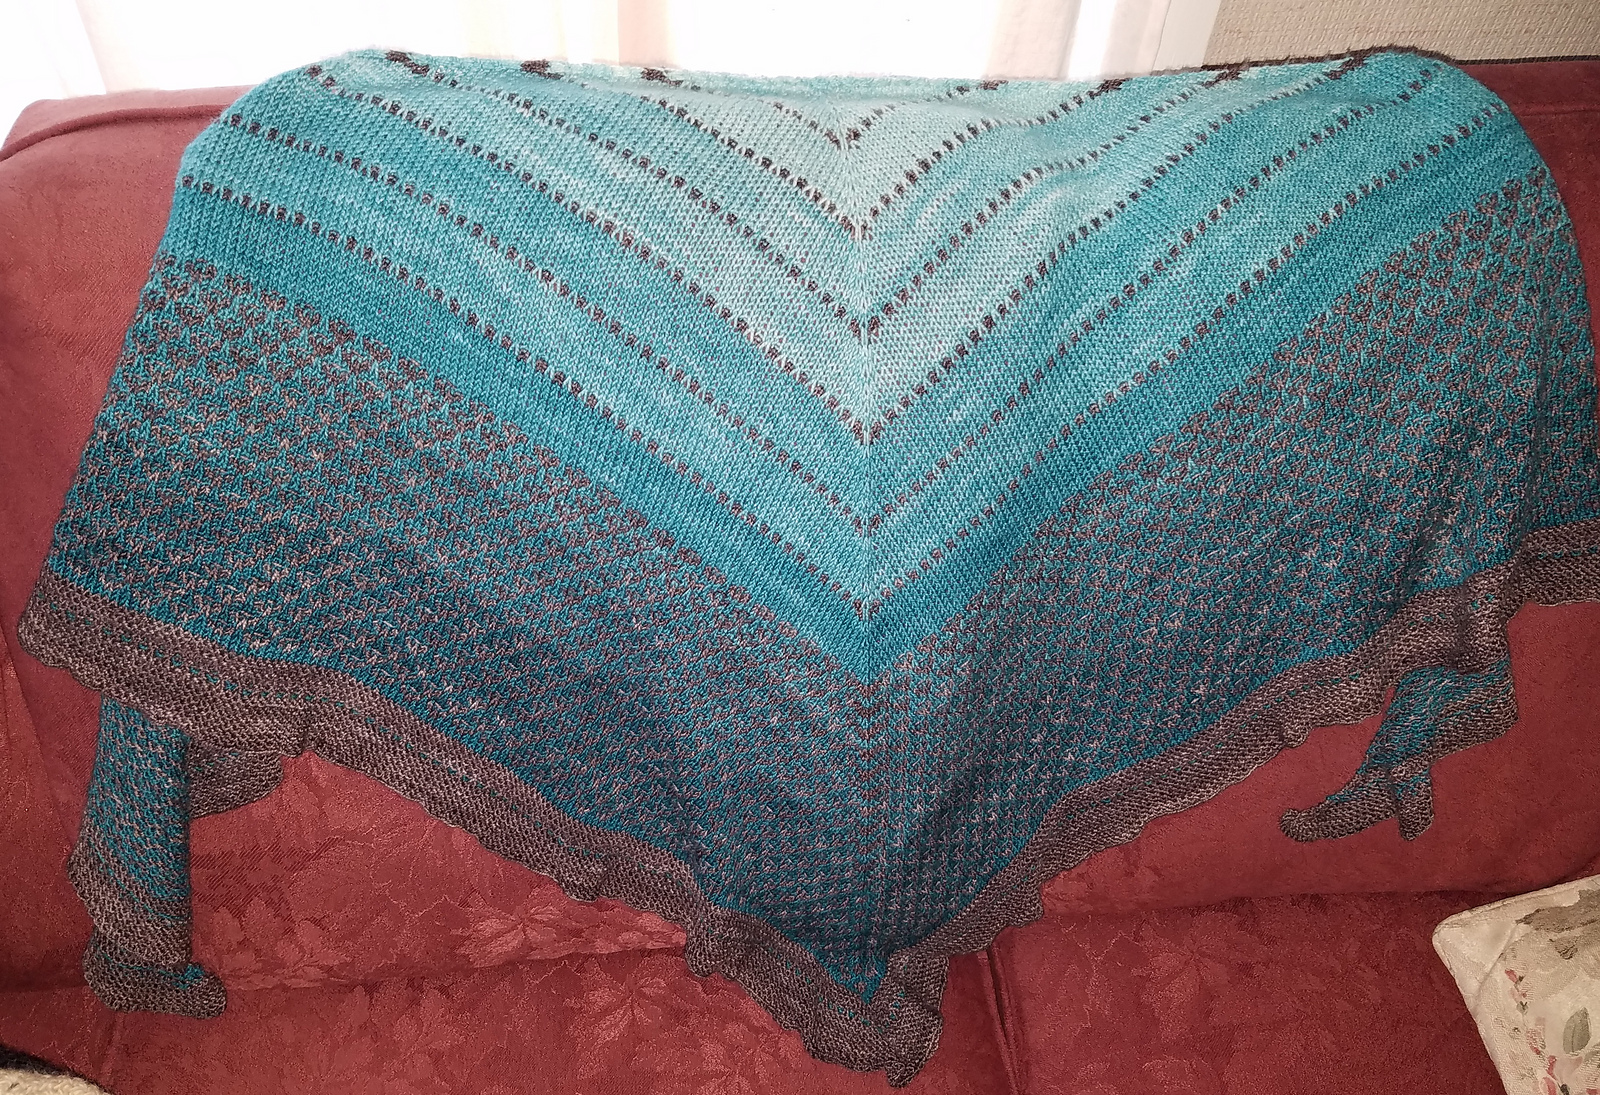 A knit shawl in stripes alternating between grey-brown and light blue deepening to darker blue